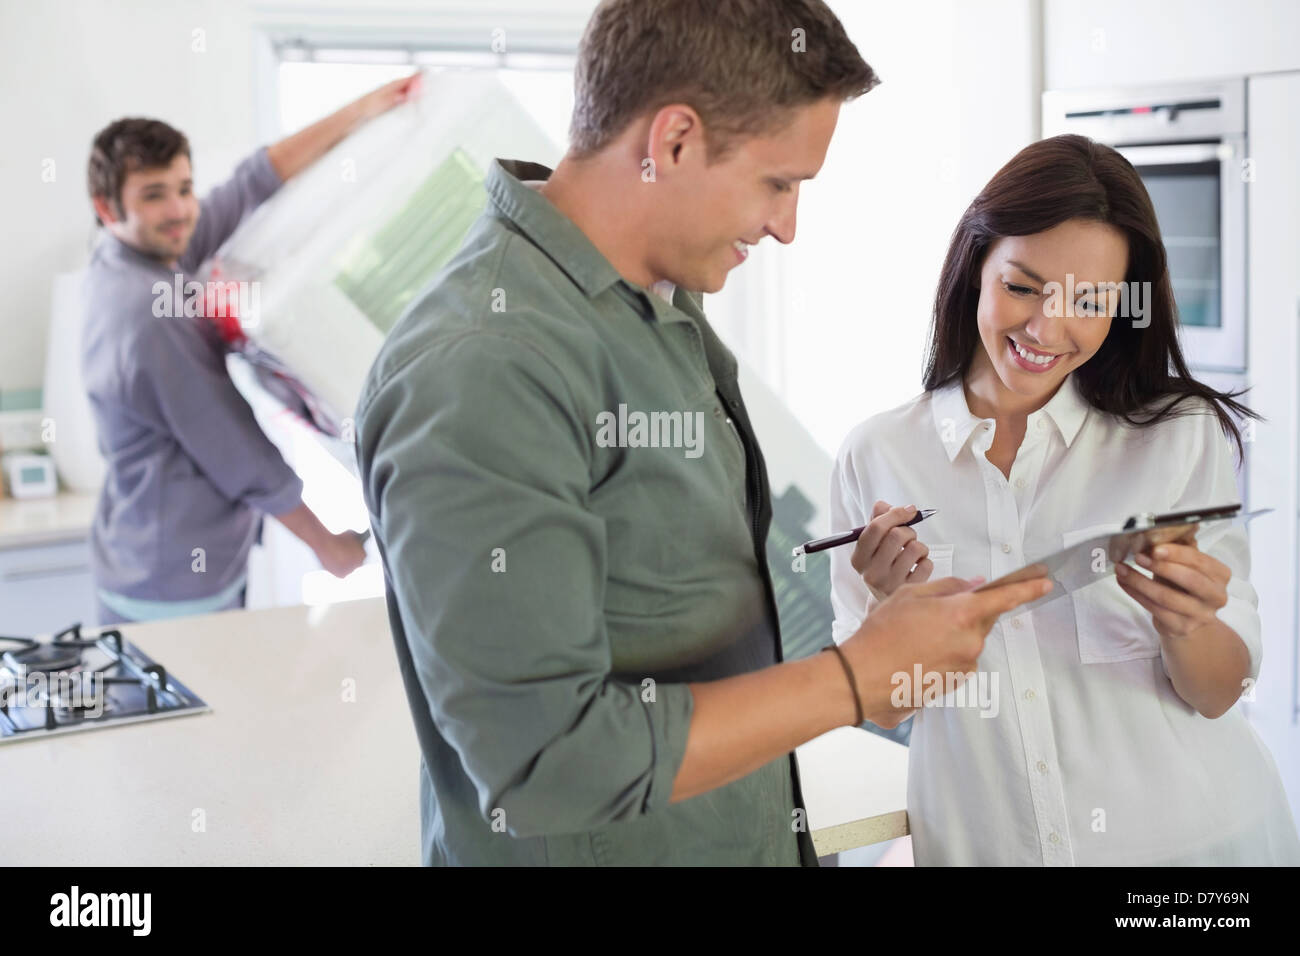 Woman signing for delivery in kitchen - Stock Image